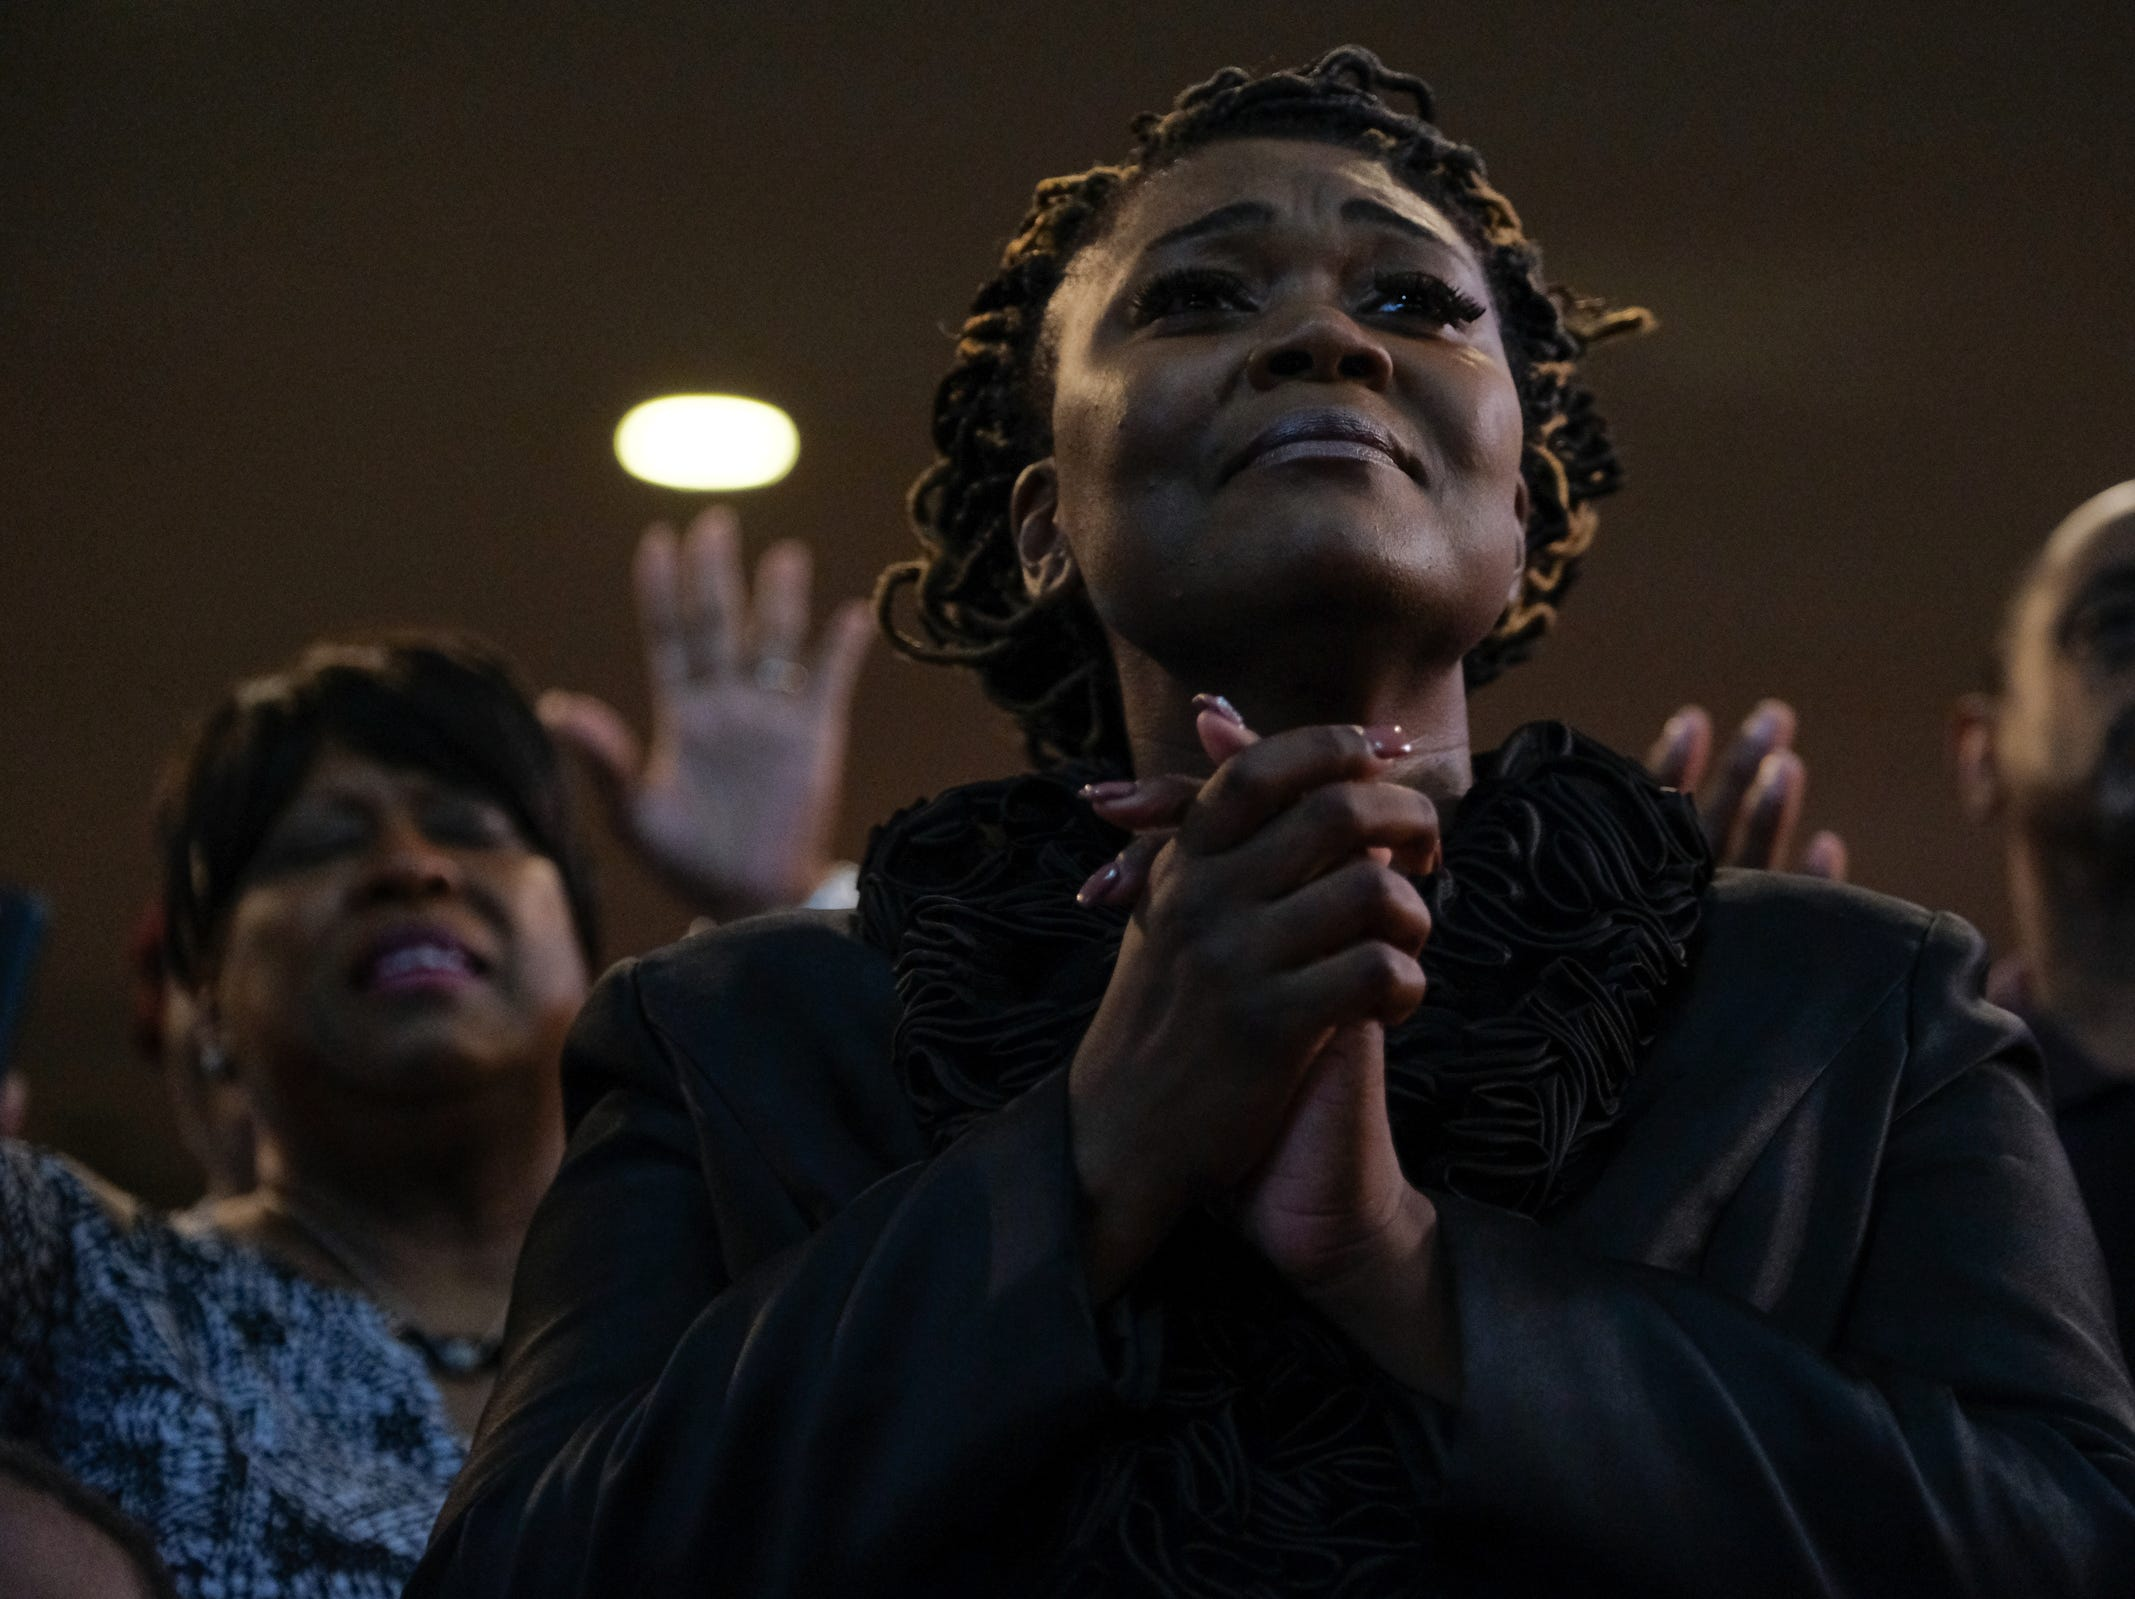 Singer Dezmonicka Jones listens to a speaker as she waits to perform during a gospel tribute concert for the late Aretha Franklin at New Bethel Baptist Church in Detroit on Monday, August 27, 2018.